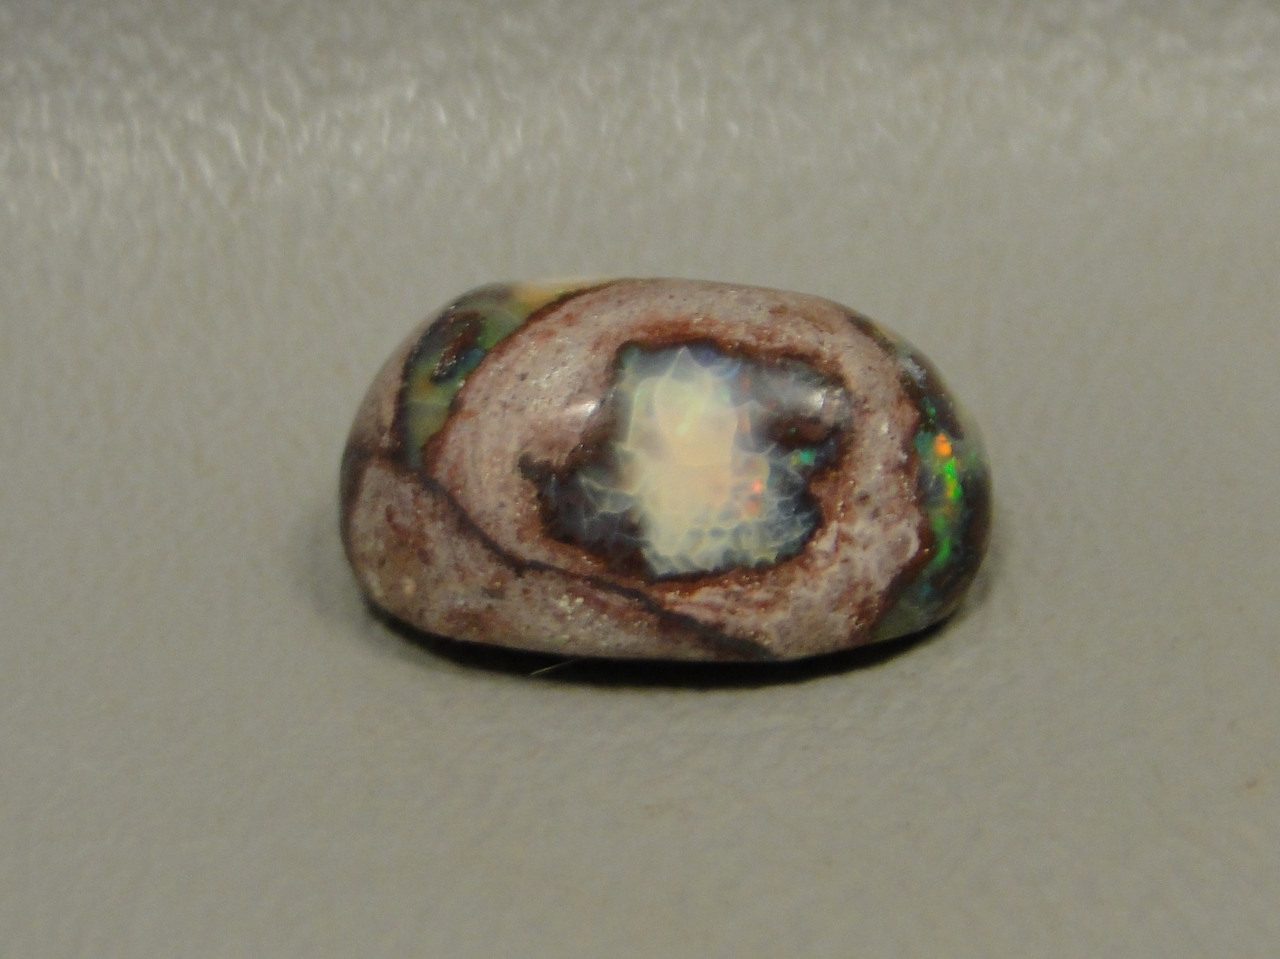 Gemstone Iridescent Mexican Fire Opal Cabochon Stone #24